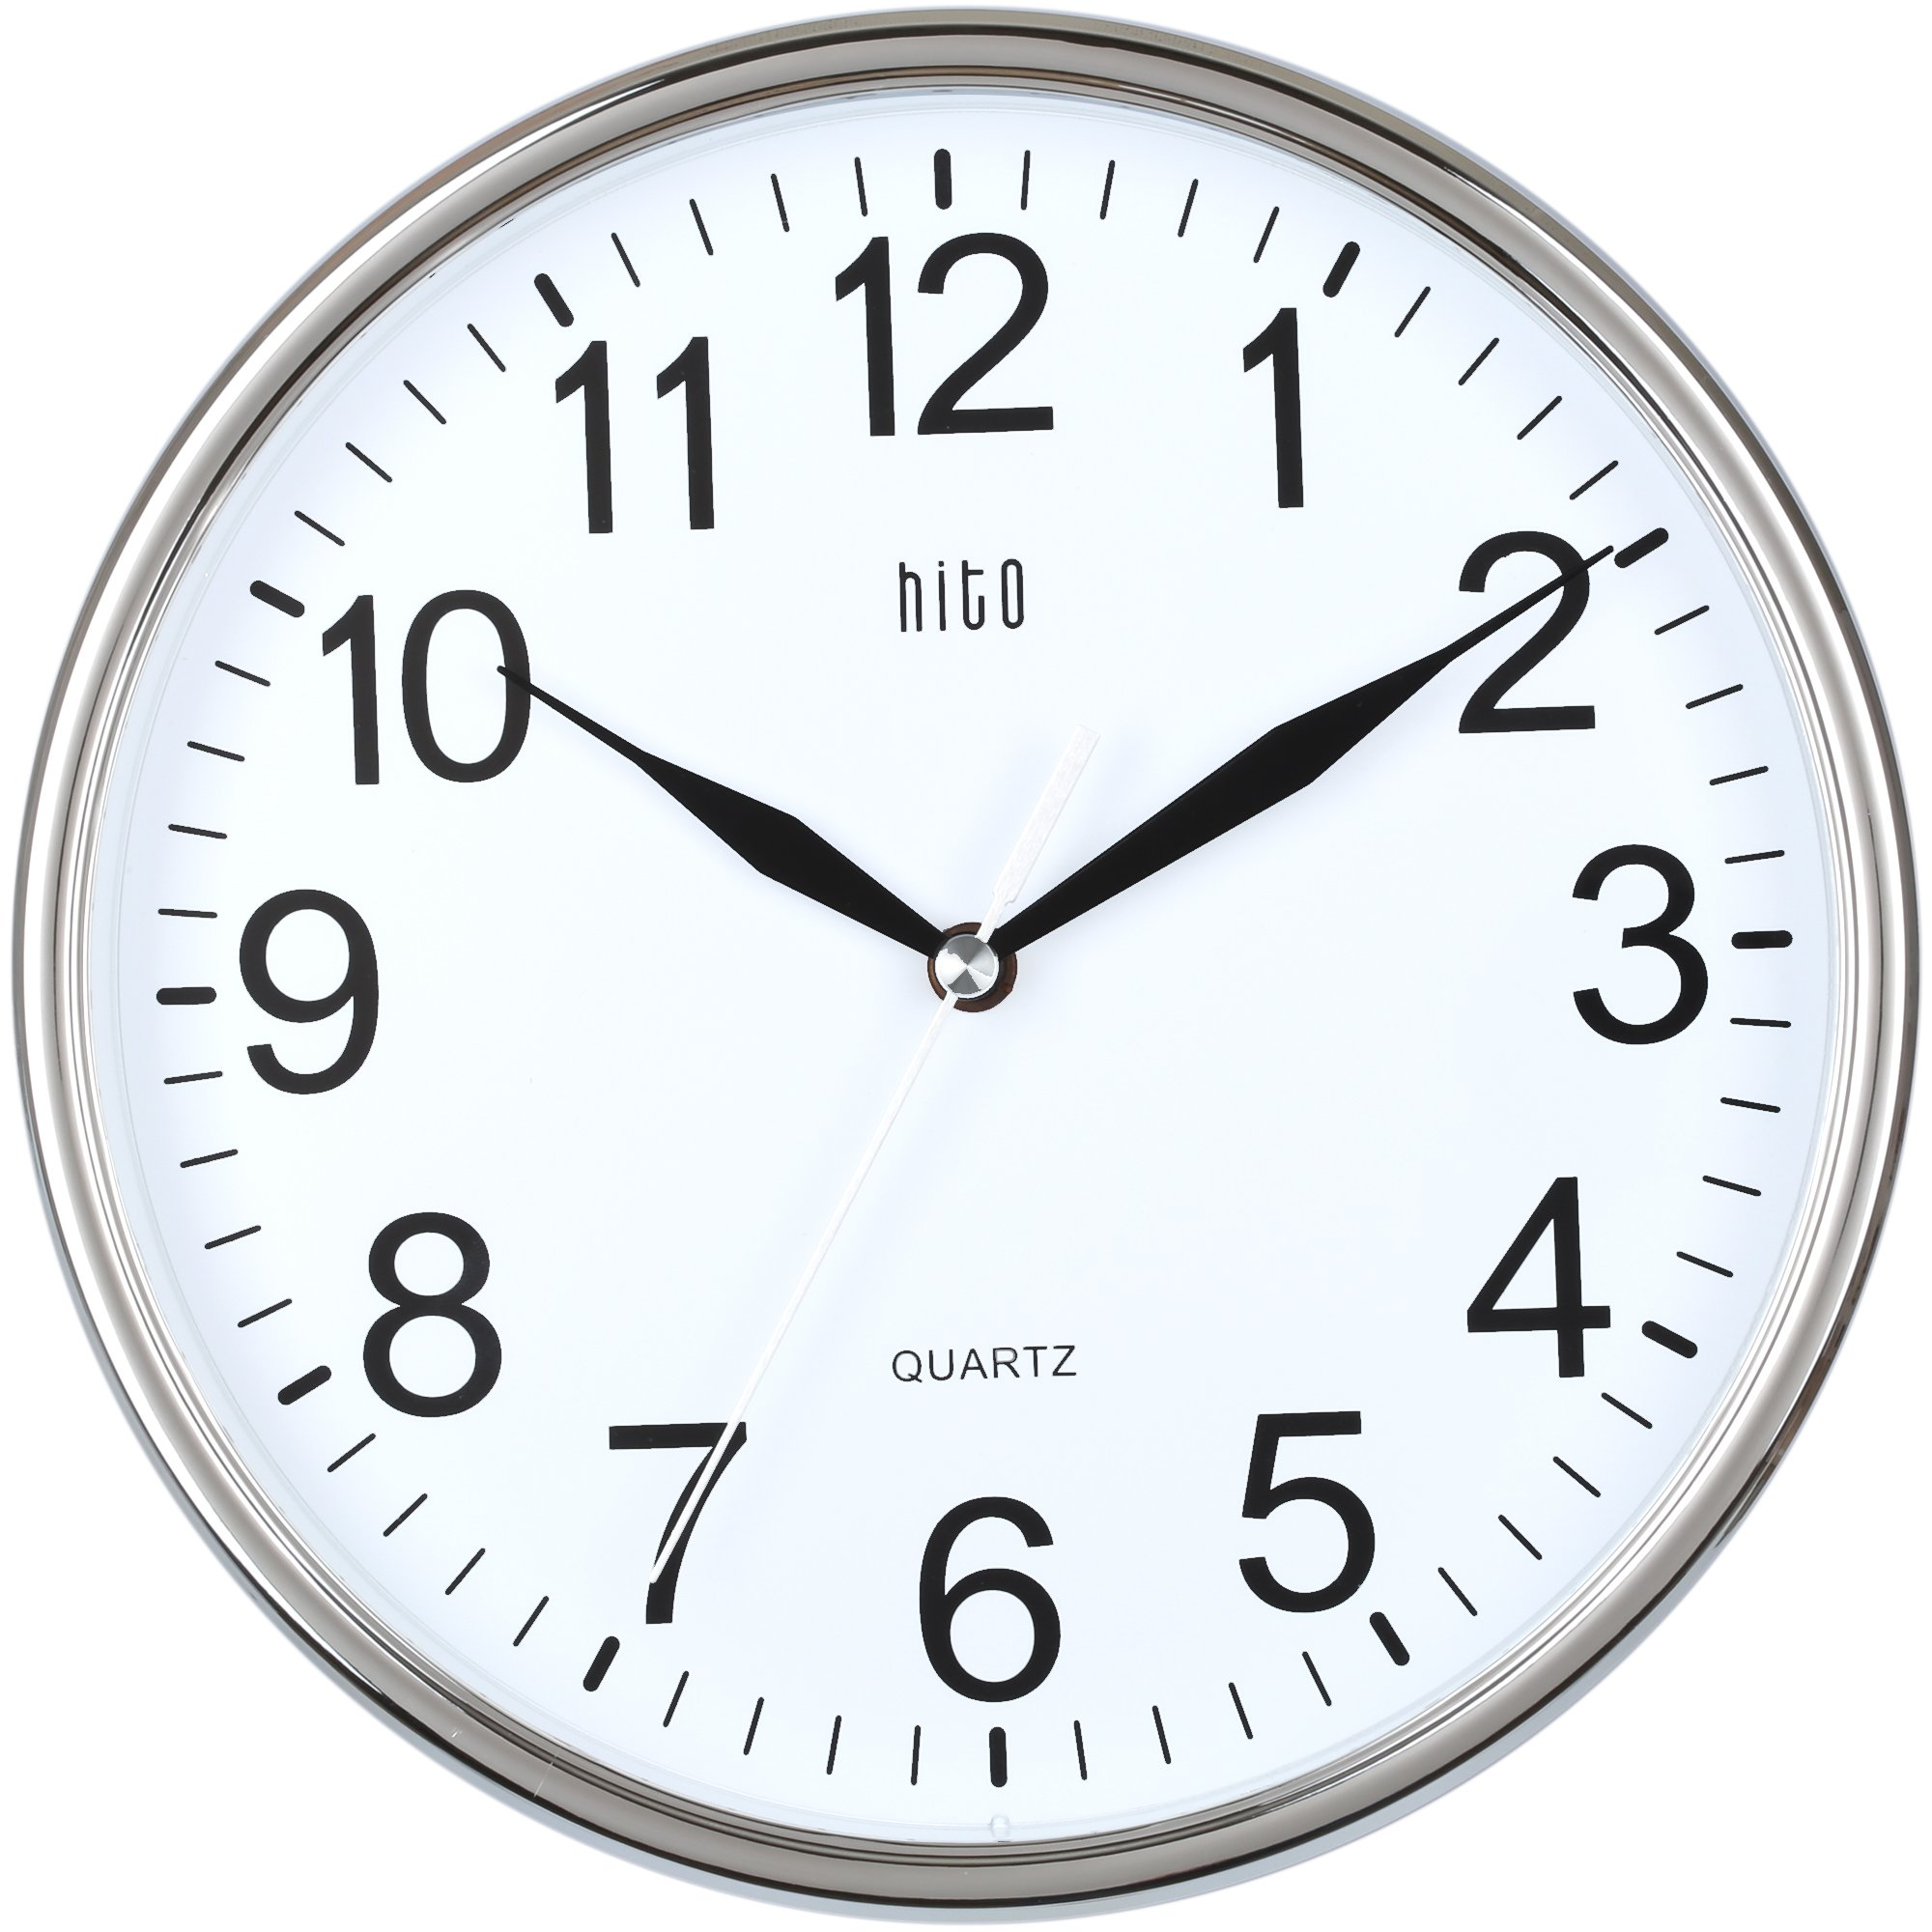 hito silent wall clock non ticking 10 inch excellent accurate sweep movement glass cover modern - Kitchen Wall Clocks